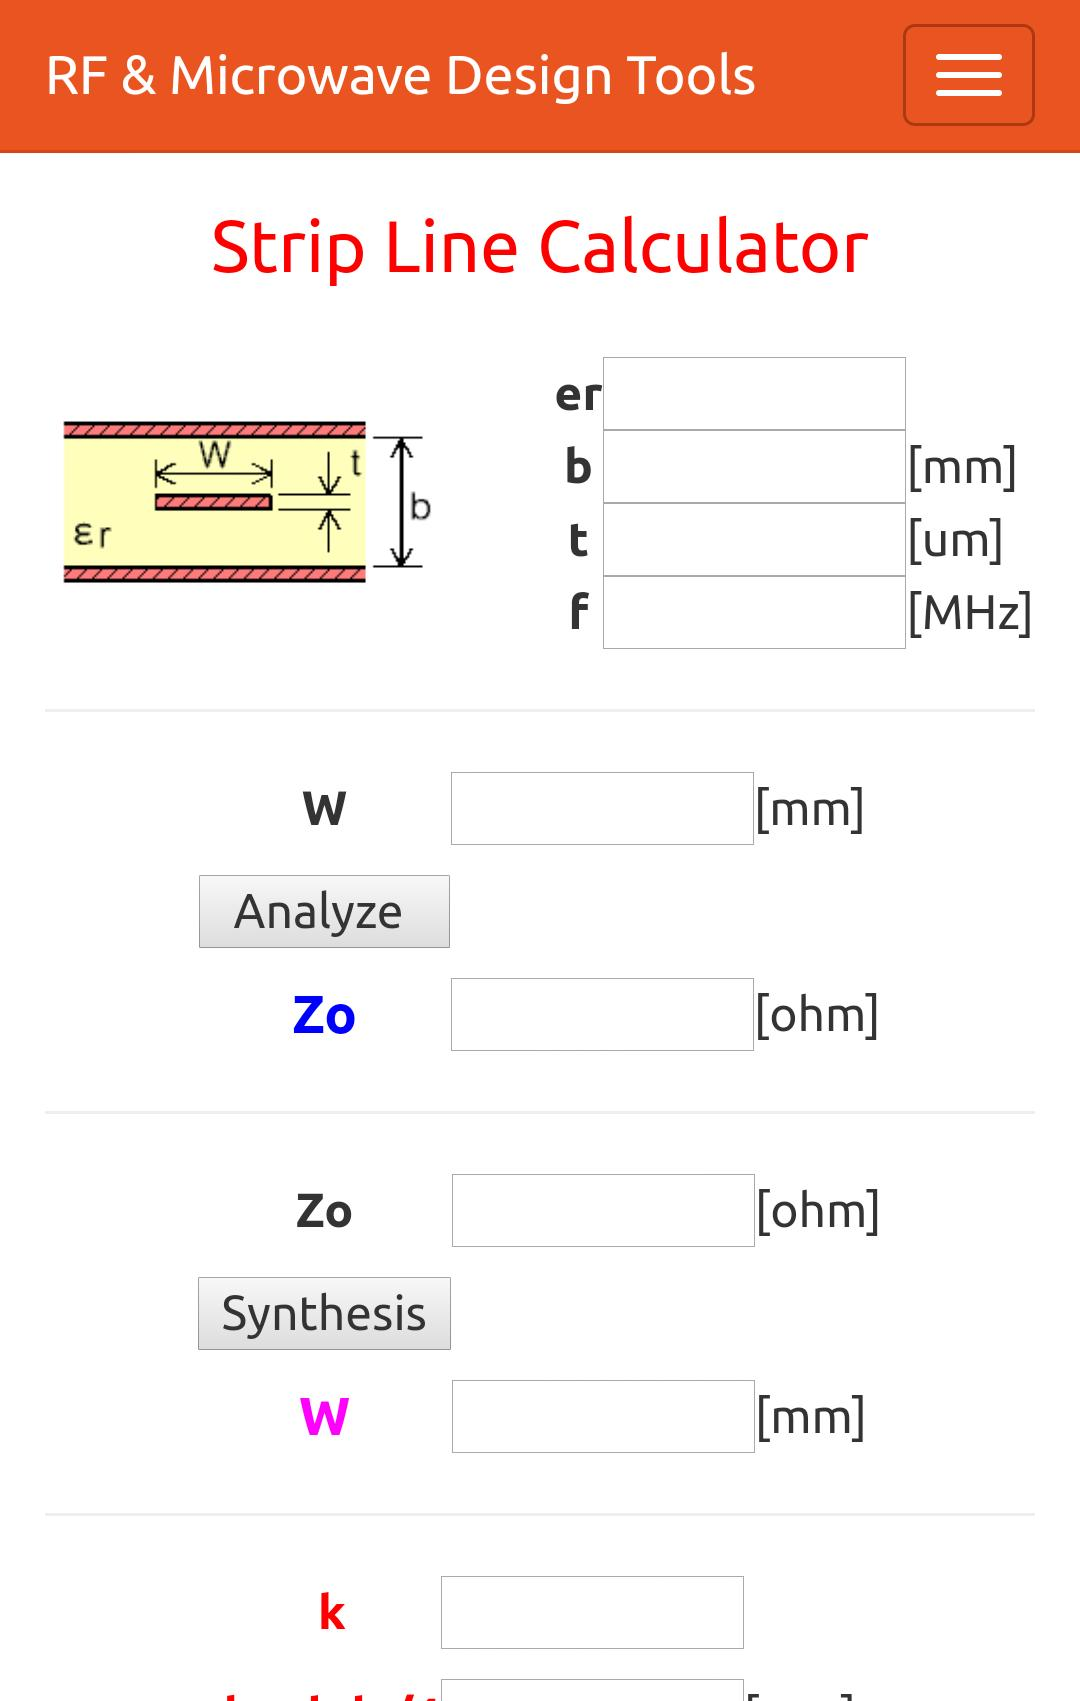 RF & Microwave Design Tools for Android - APK Download